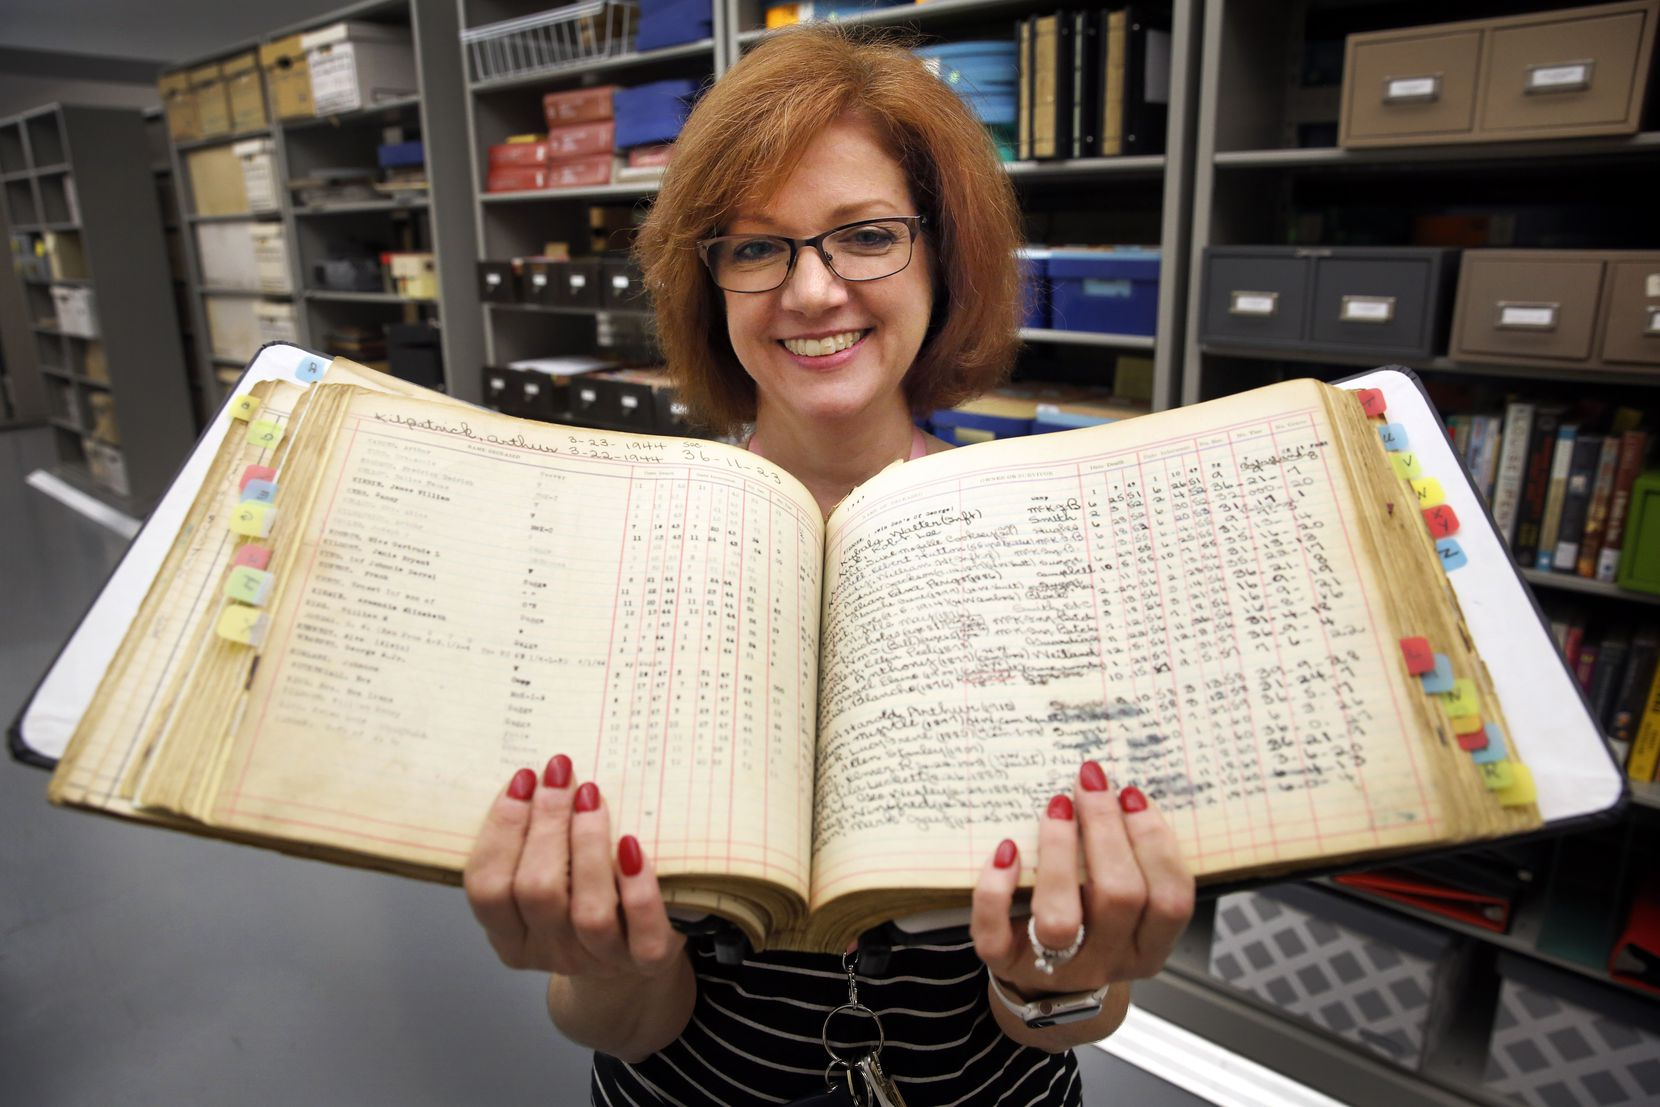 Christine Sharbrough, manager of the downtown library's Dallas History & Archives Division, is now tasked with cleaning and organizing the Oakland Cemetery archives. Here she holds one the burial ledger.